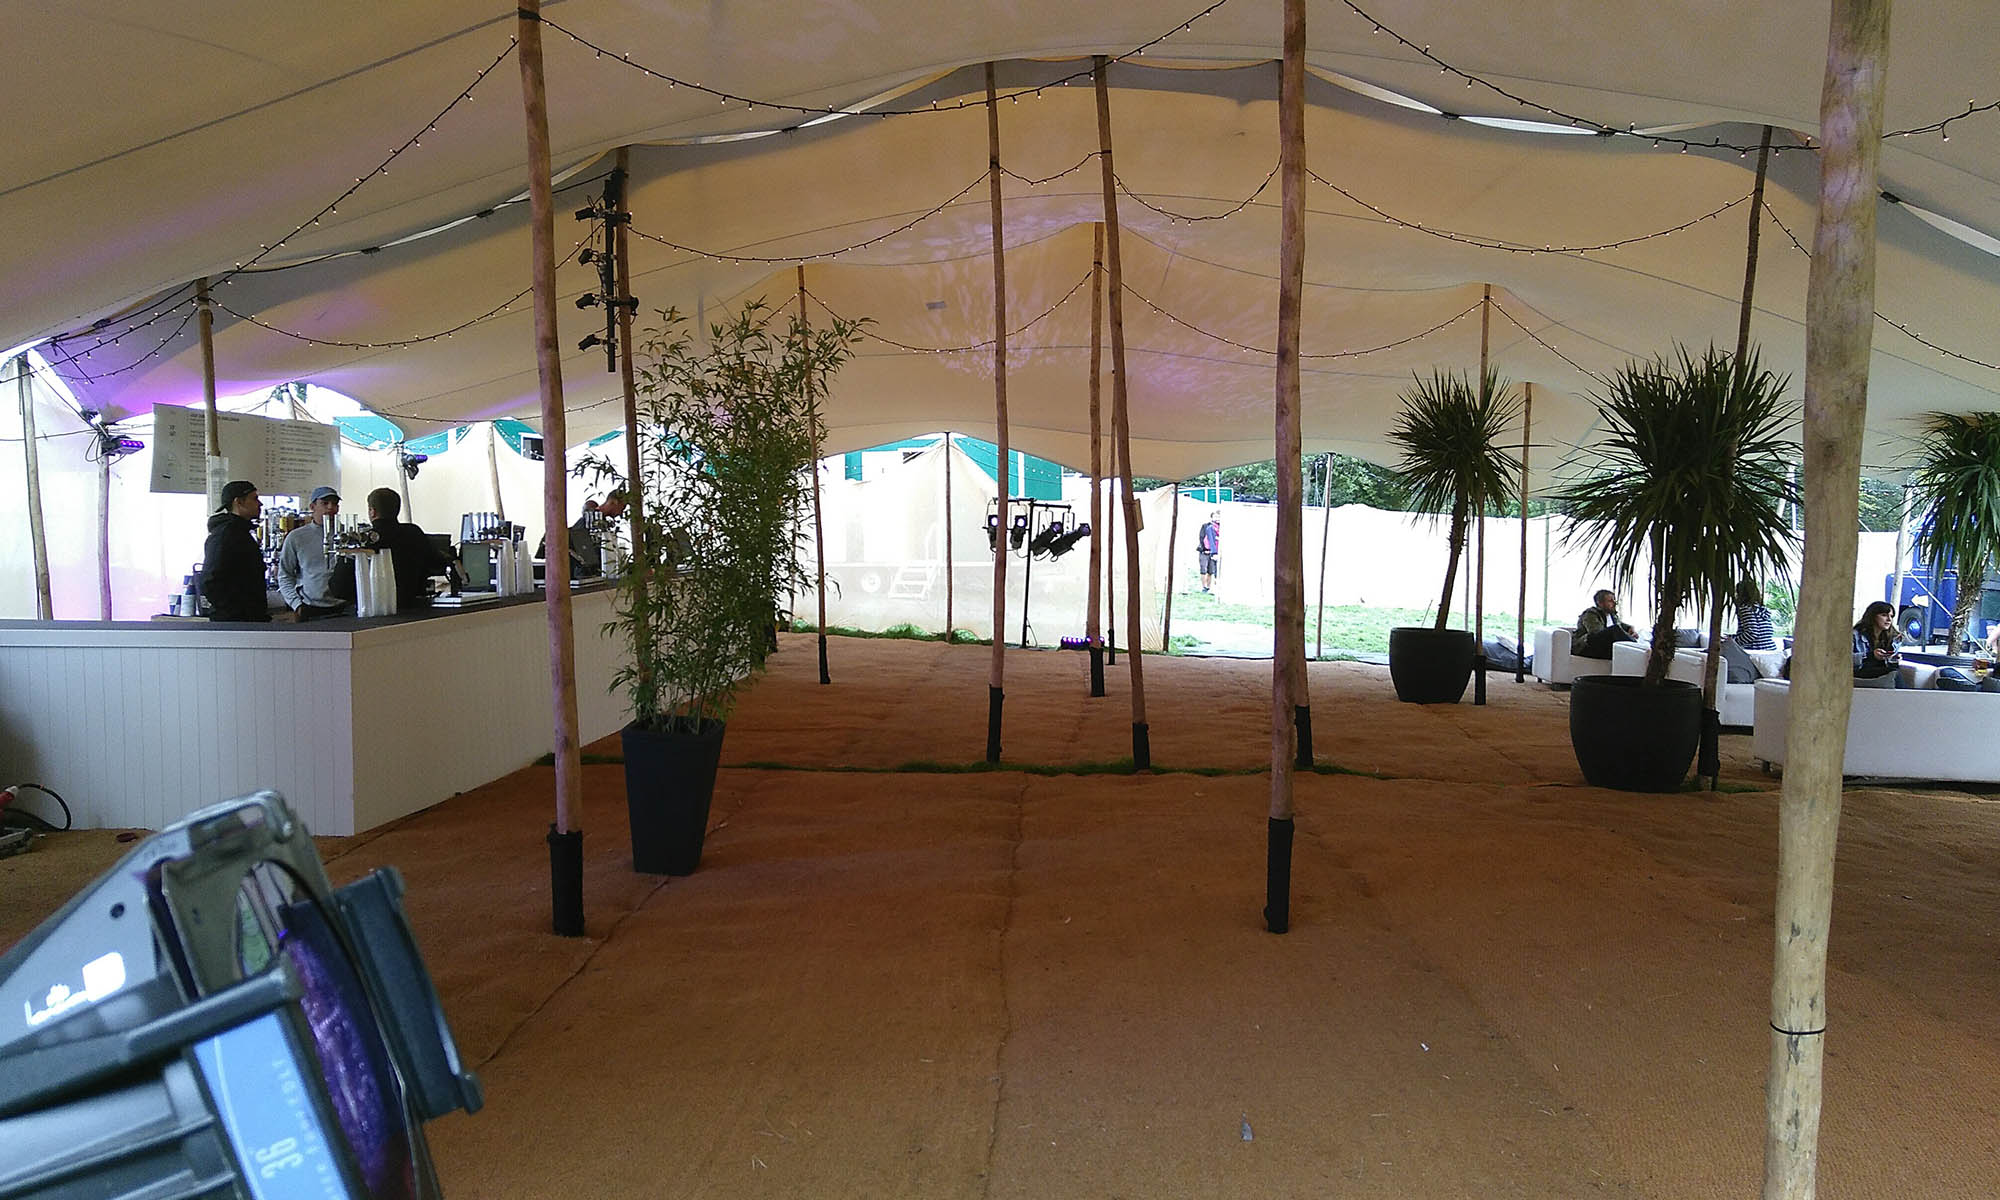 wales vip stretch tent hire stretch tent rental for festival number 6 canopy tent with lycra walls wooden poles bar stage lighting and flooring hire